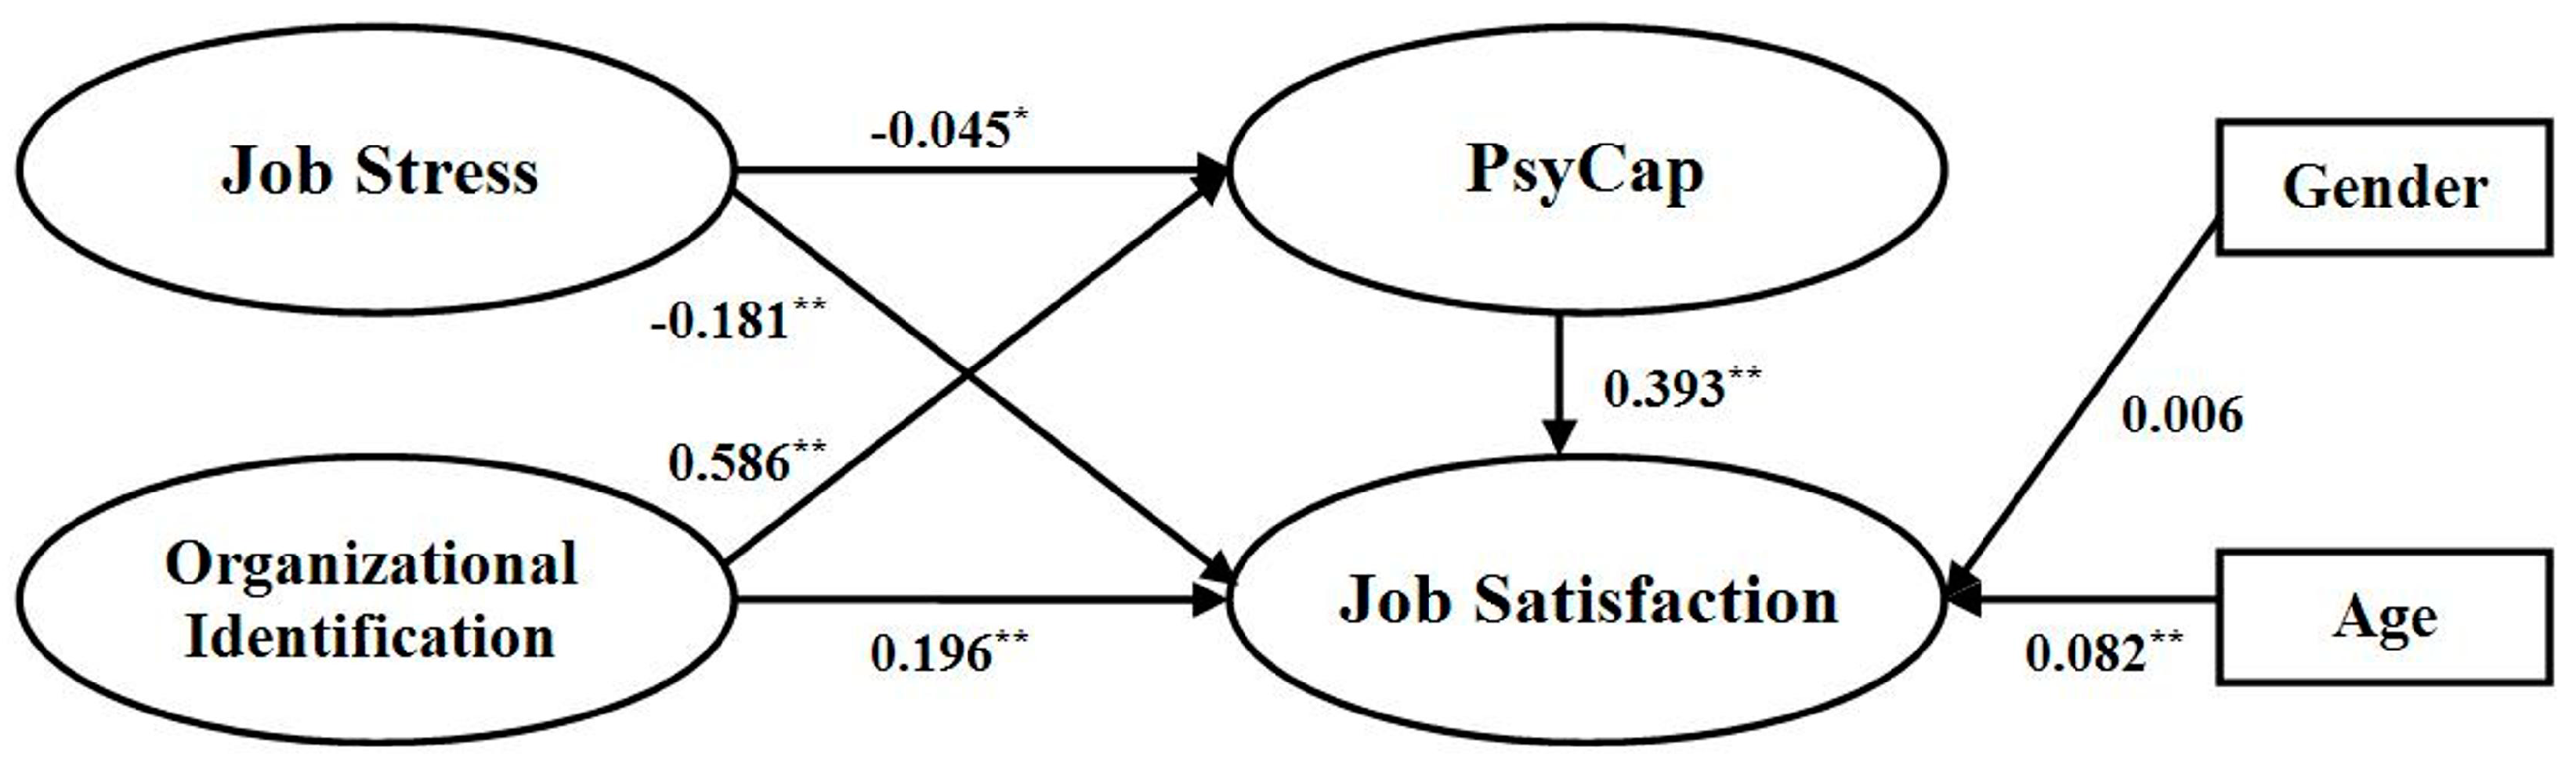 A Model of Employee Satisfaction  Gender Differences in     The Journal of Extension